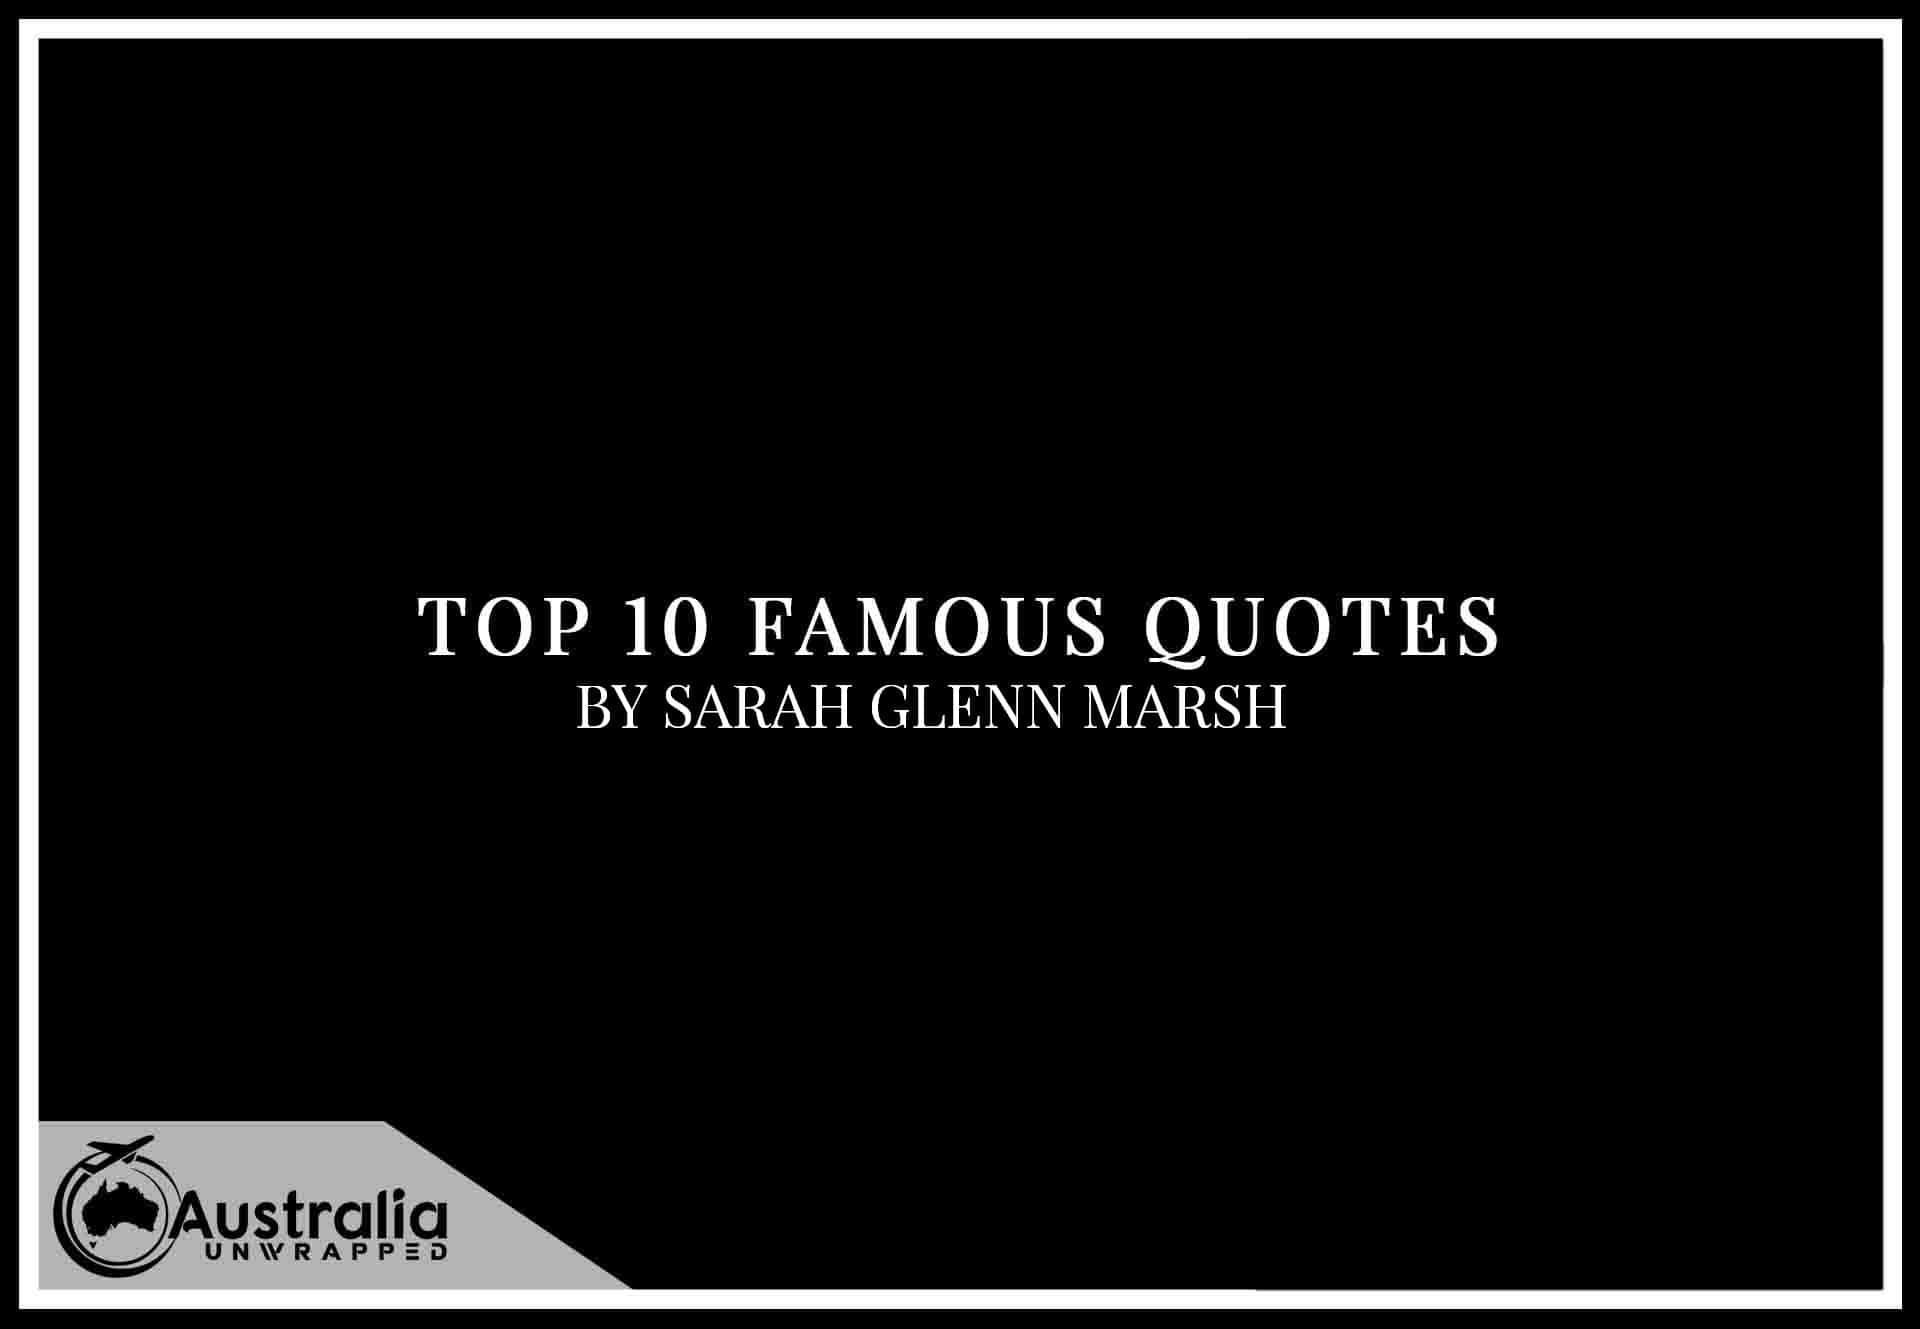 Top 10 Famous Quotes by Author Sarah Glenn Marsh